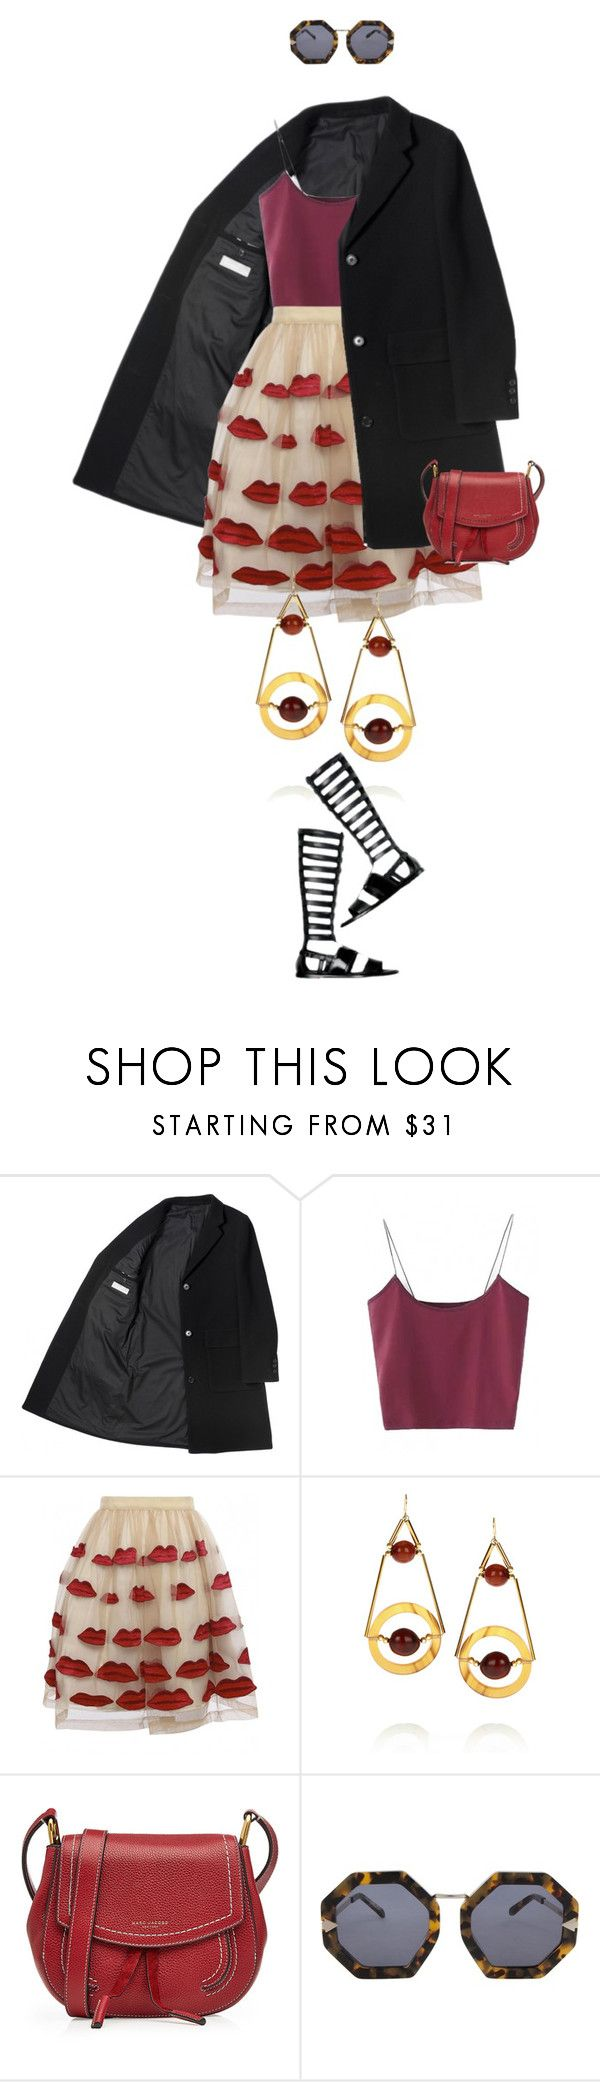 """""""eva1619"""" by evava-c on Polyvore featuring Alice + Olivia, Marni, Marc Jacobs and Karen Walker"""